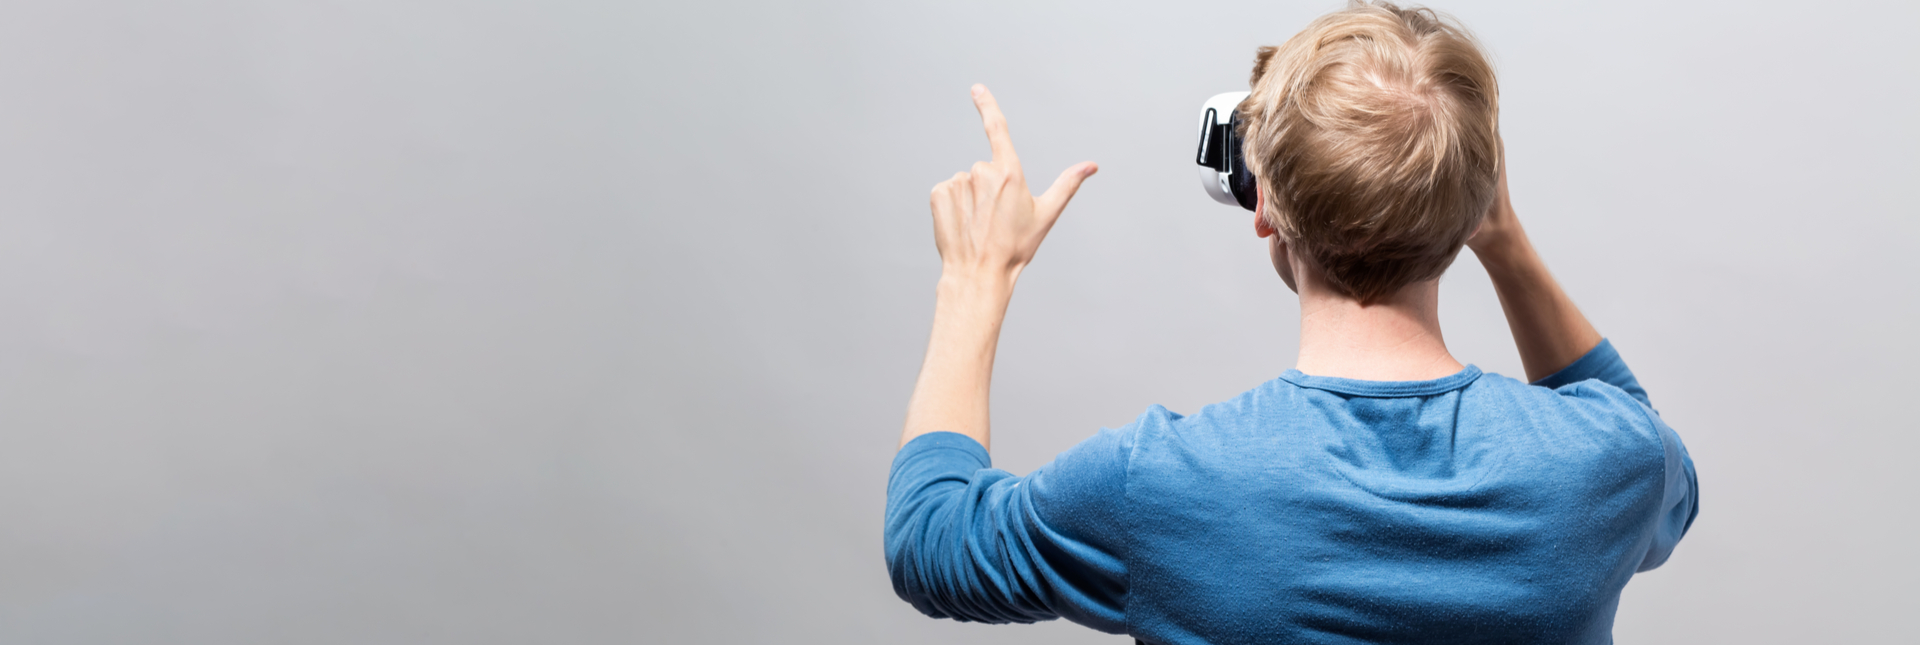 JVC Shows Off XR Headset With Insane Field Of View